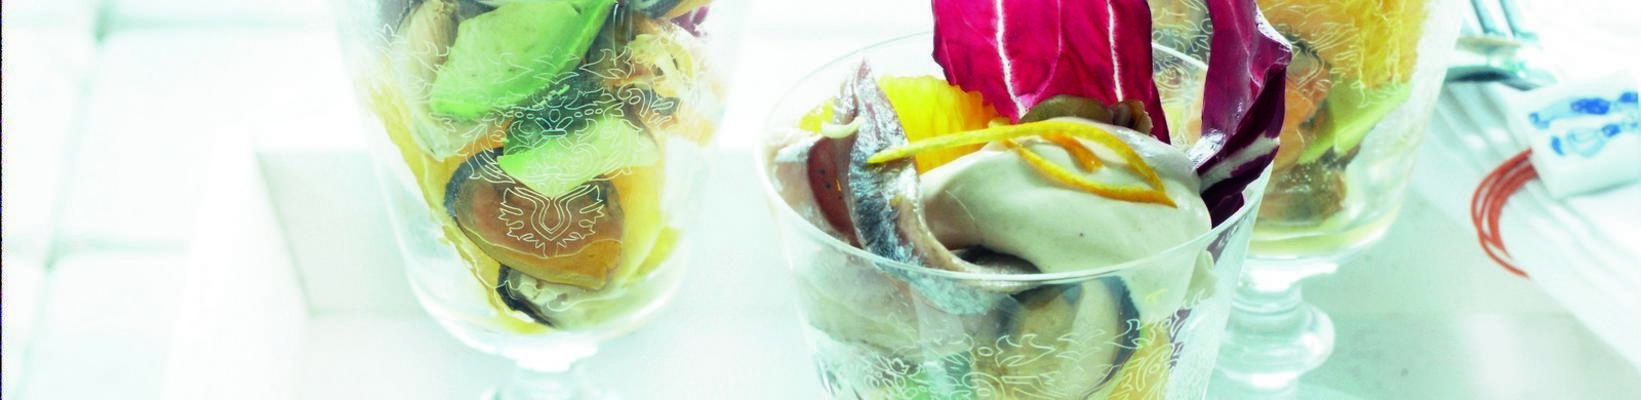 mussel-size cocktail with orange and avocado